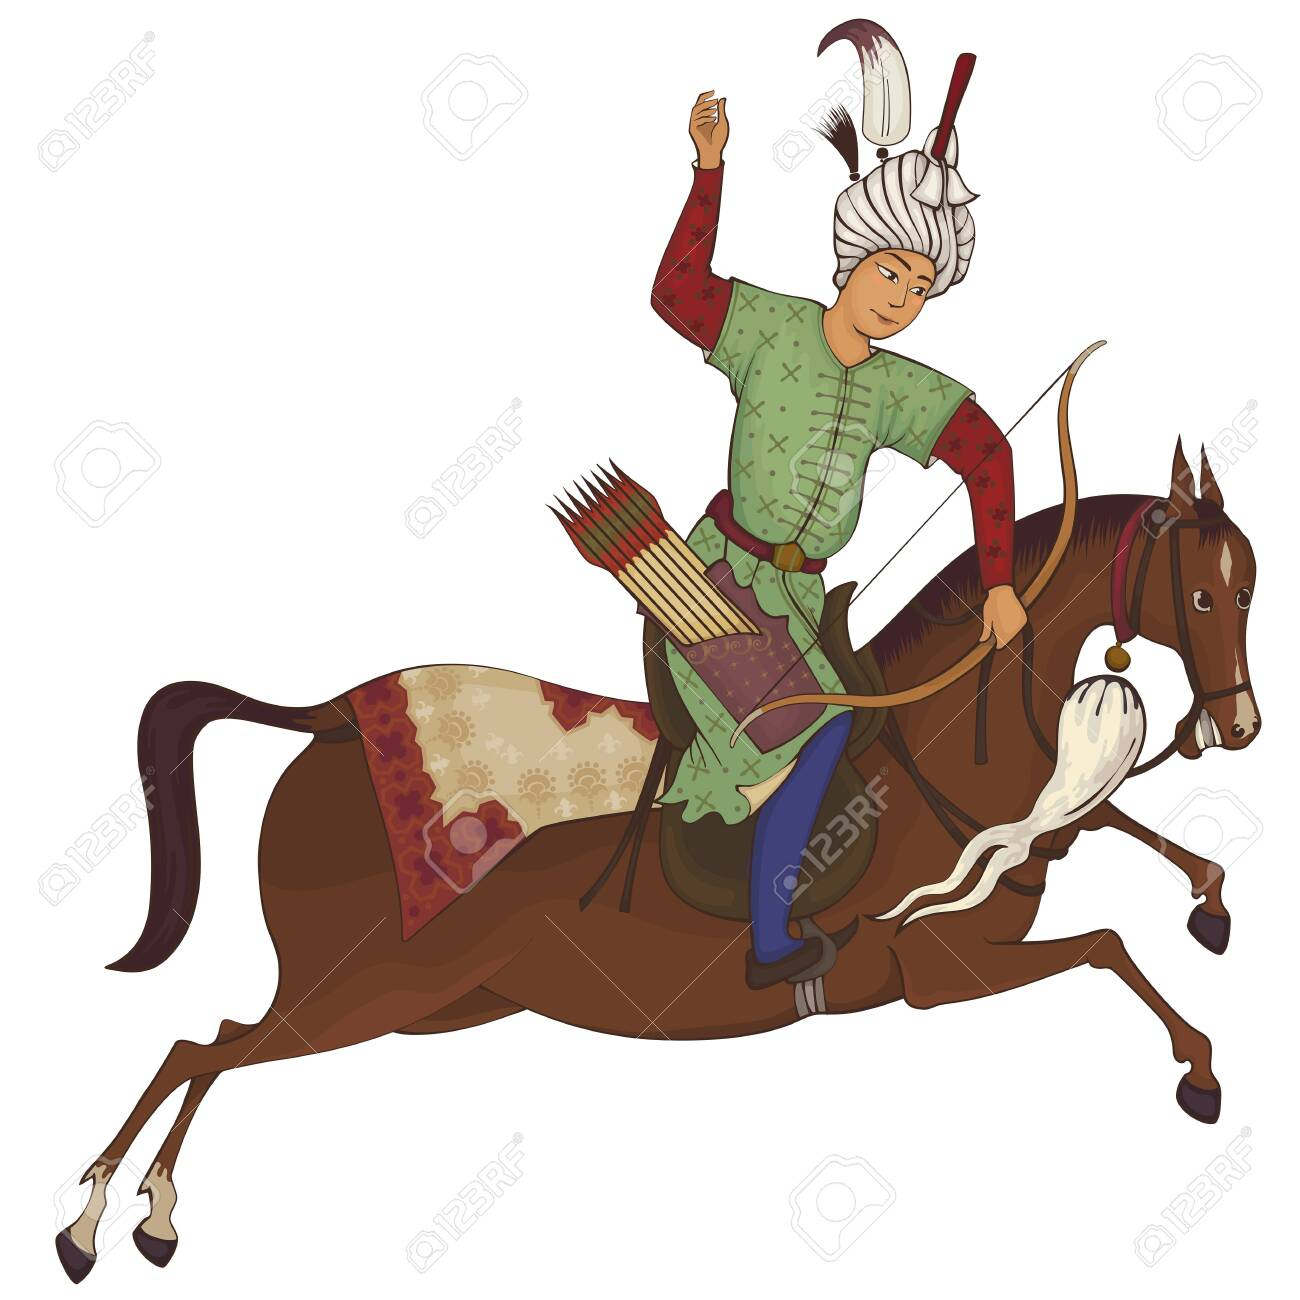 Horse Rider Persian Miniature Stylized Illustration Medieval Royalty Free Cliparts Vectors And Stock Illustration Image 137947522